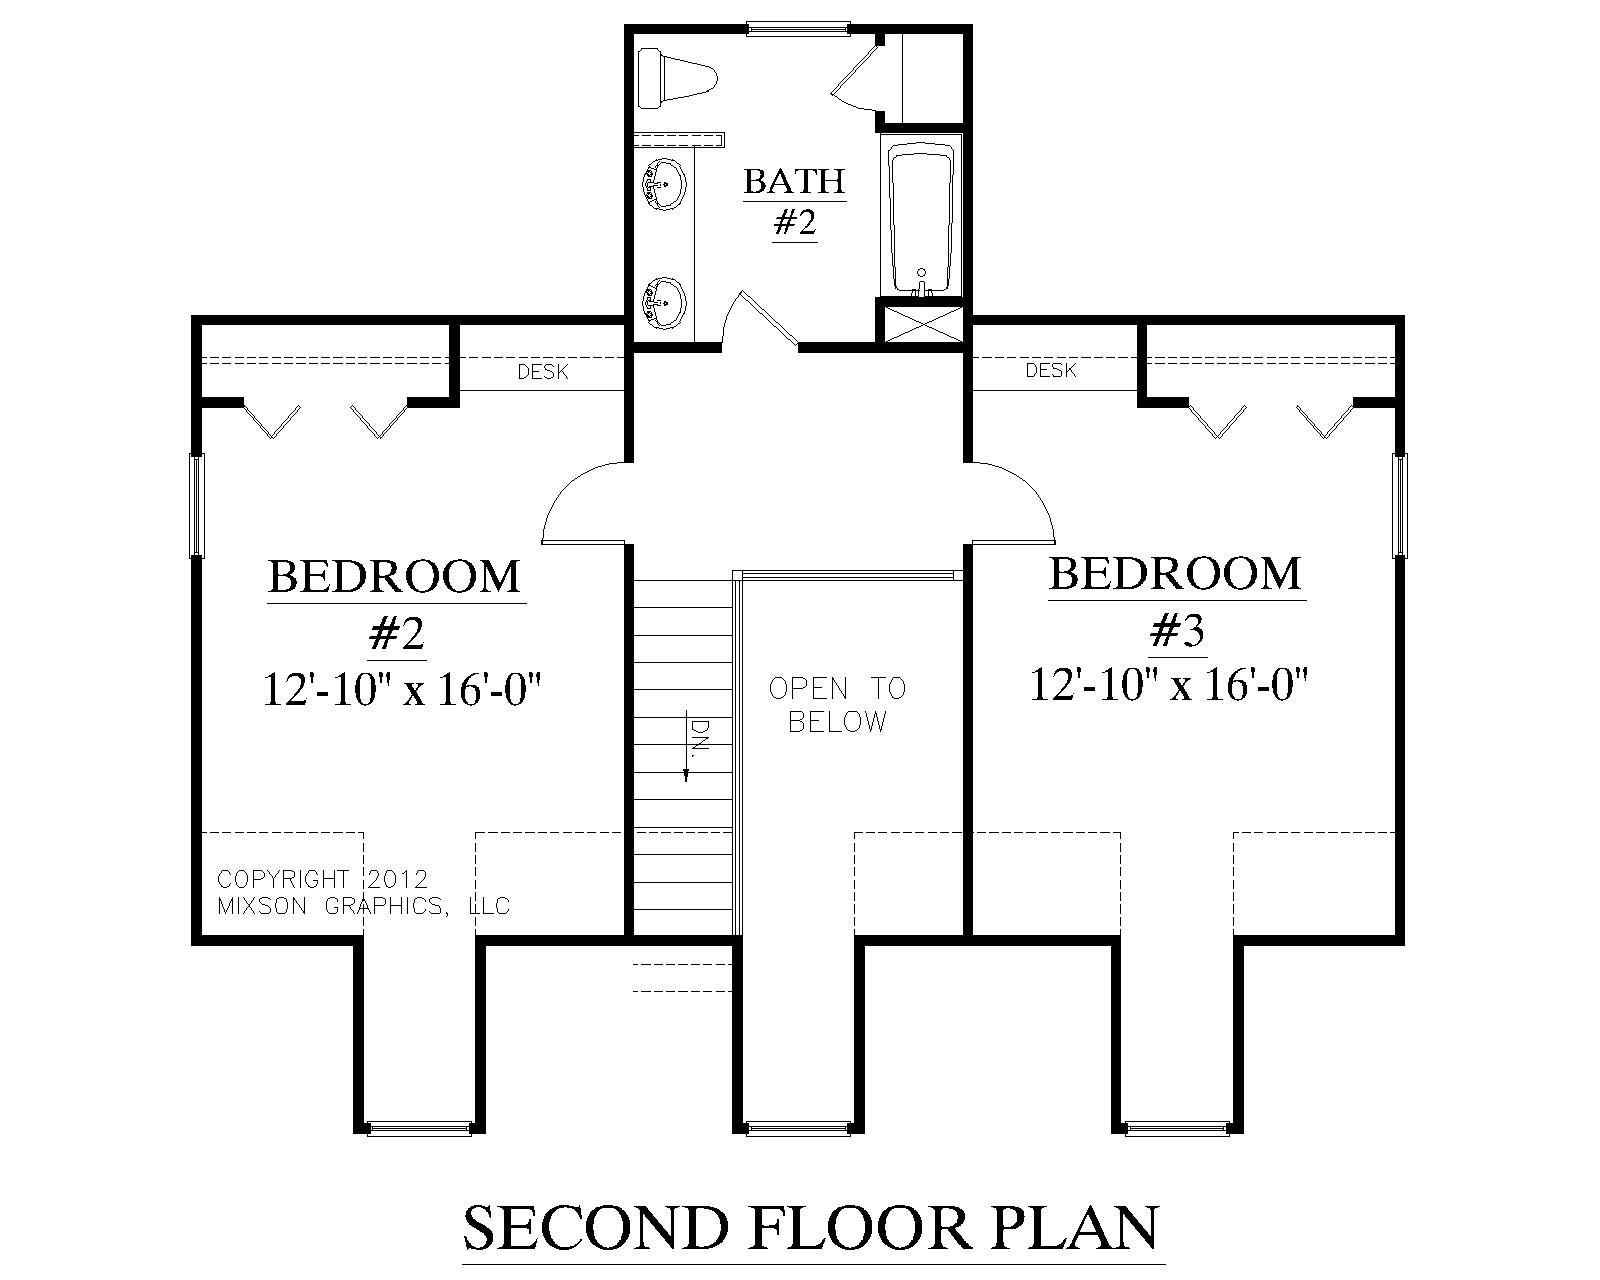 House Plan 2051 Ashland Second Floor Plan Colonial Cottage 1 1 2 Story Design With Three Bedrooms And 2 Floor Plans Garage Floor Plans Bungalow Floor Plans